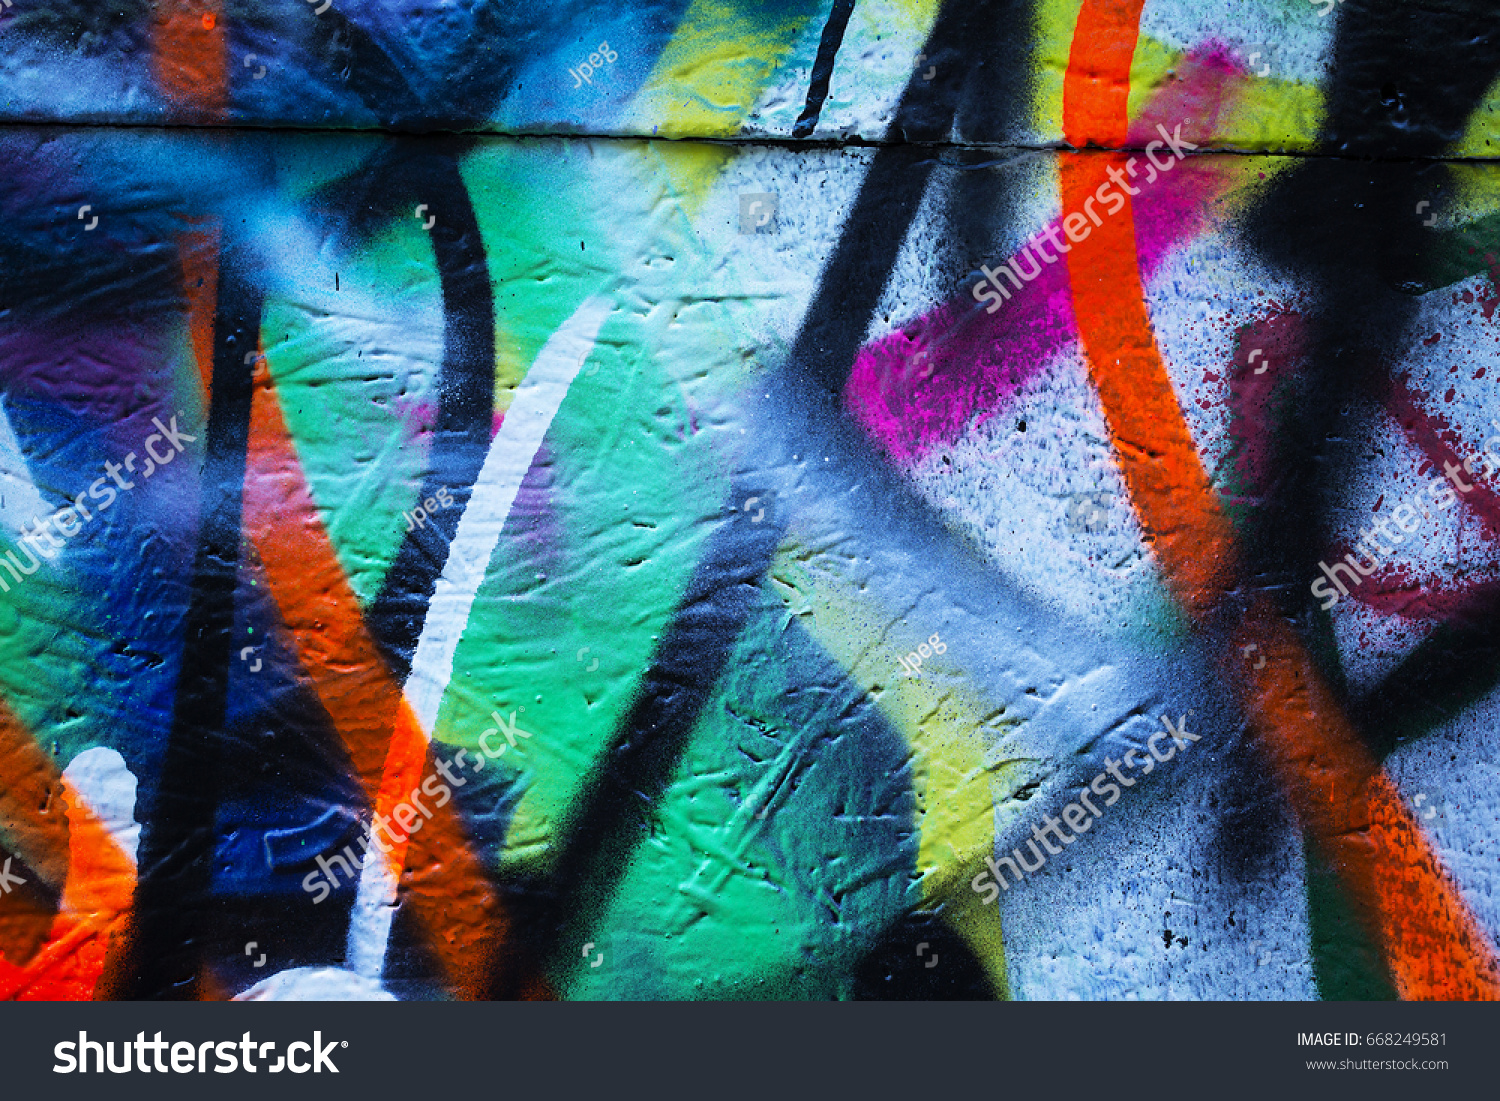 Mix Spray Paint Colors On Wooden Stock Photo Edit Now 668249581